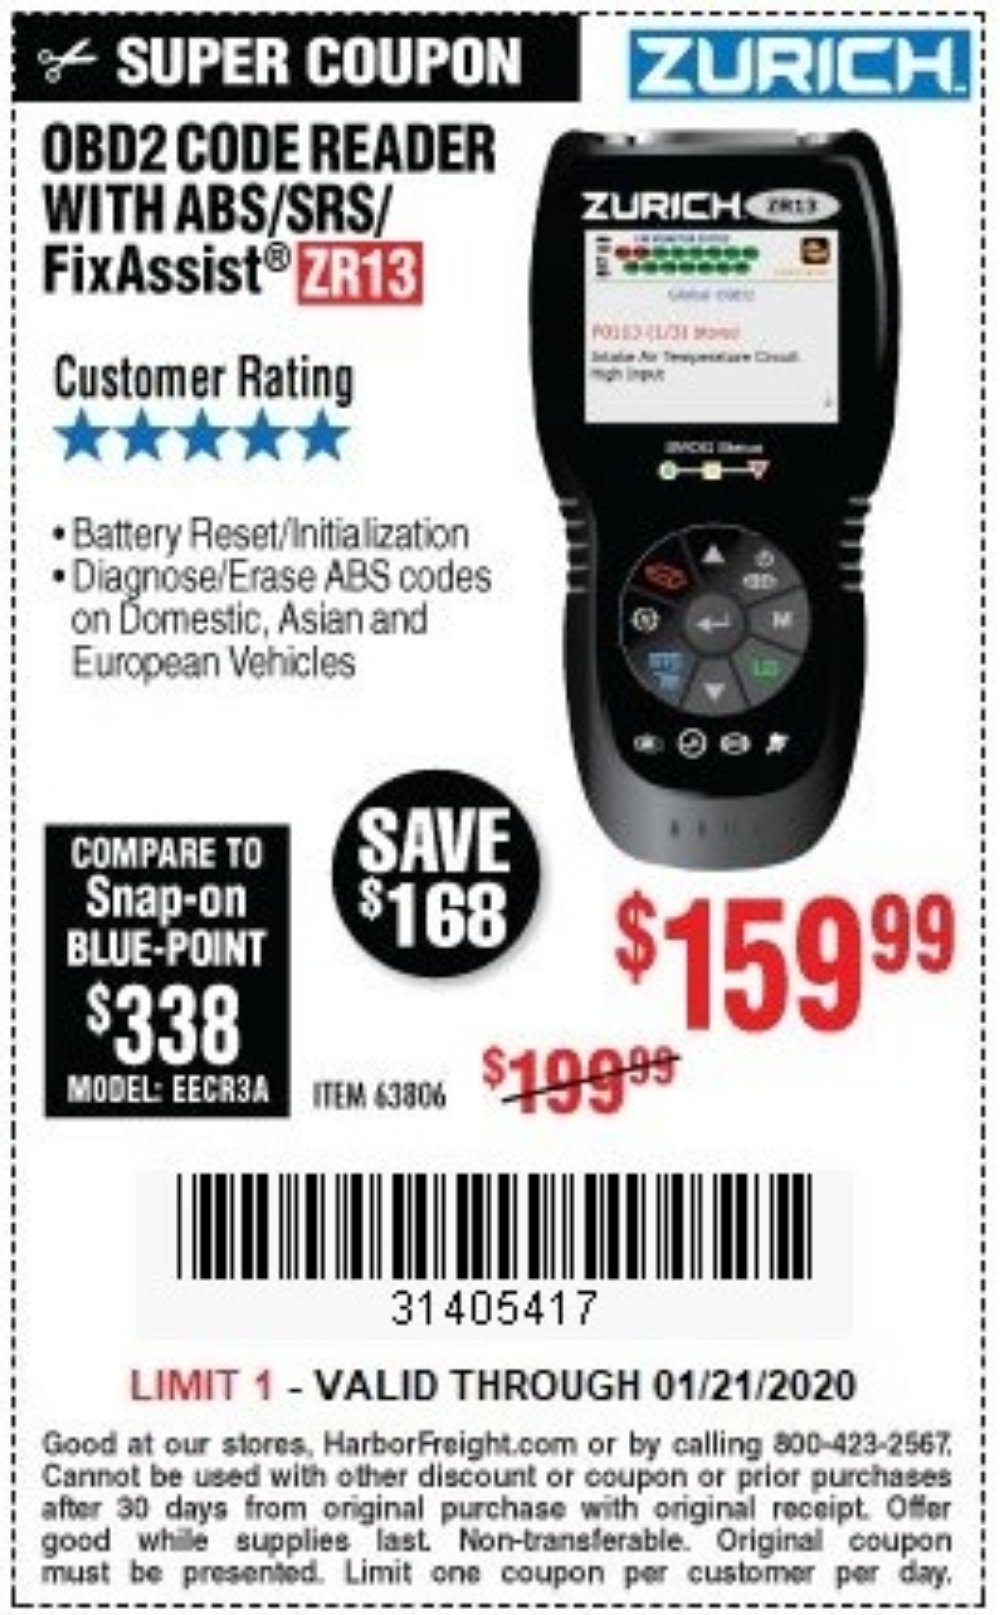 Harbor Freight Coupon, HF Coupons - Zurich Obd2 Scanner With Abs Zr13